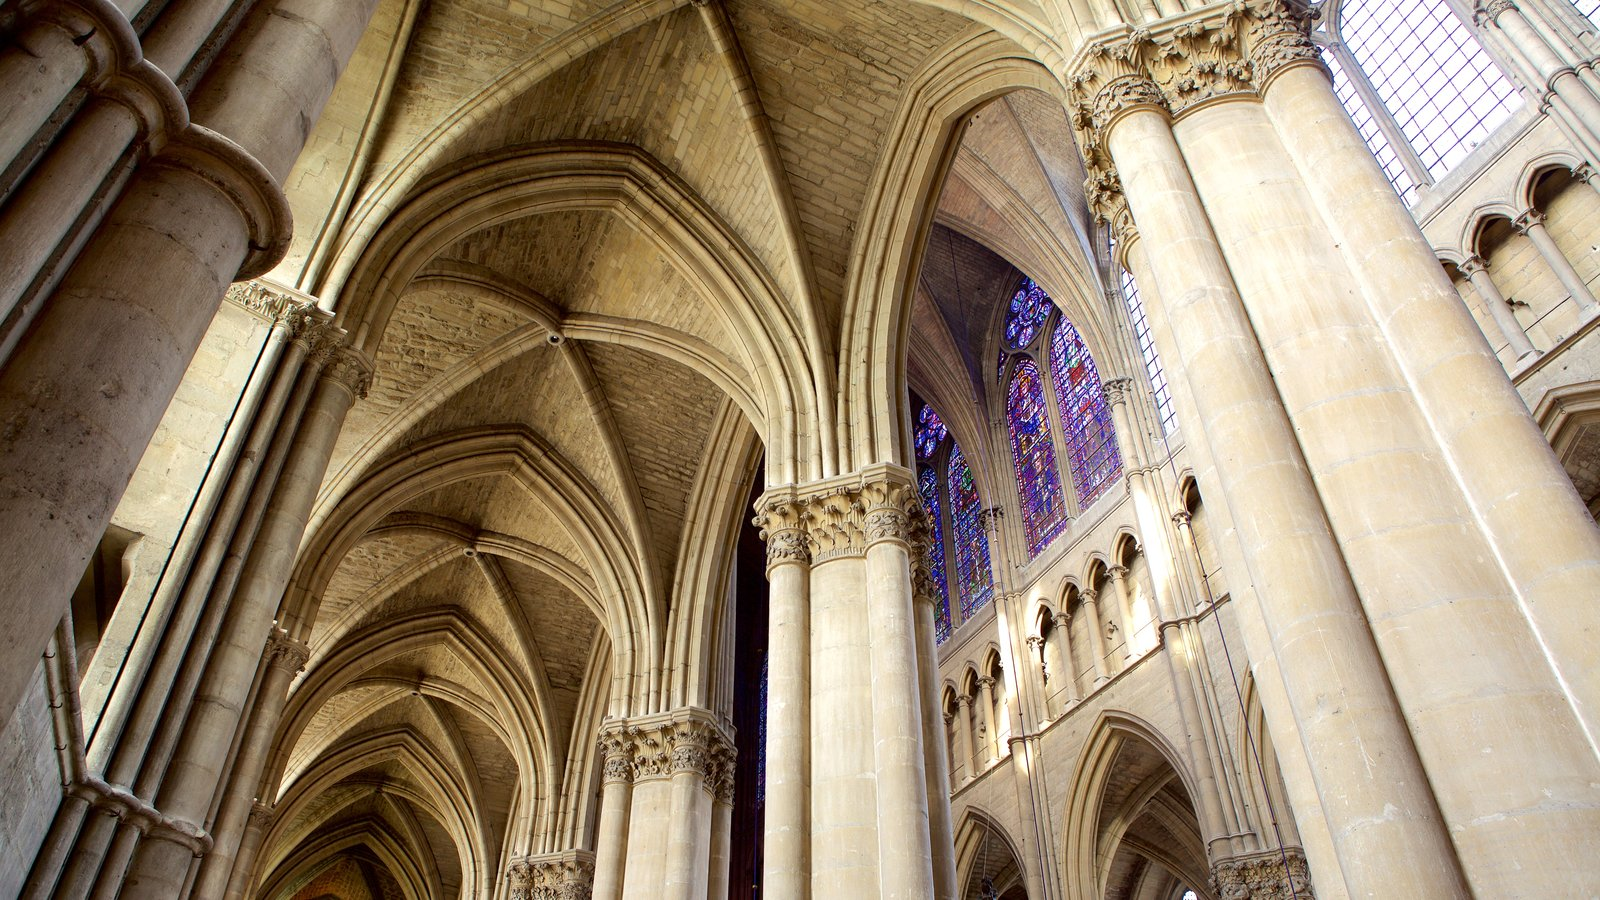 Reims Cathedral Featuring Interior Views, Heritage Architecture And  Heritage Elements